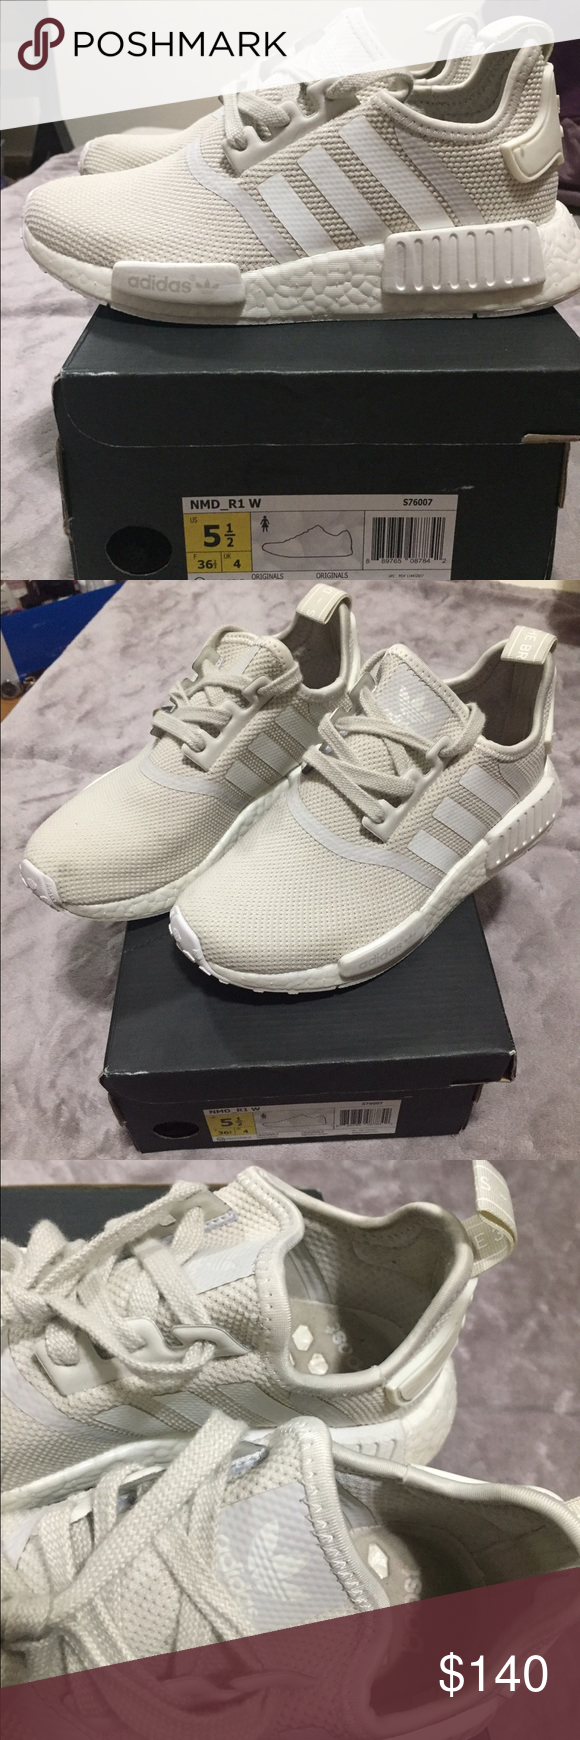 Tags : Primeknit Gucci NMD R1 Blog Louis Winner